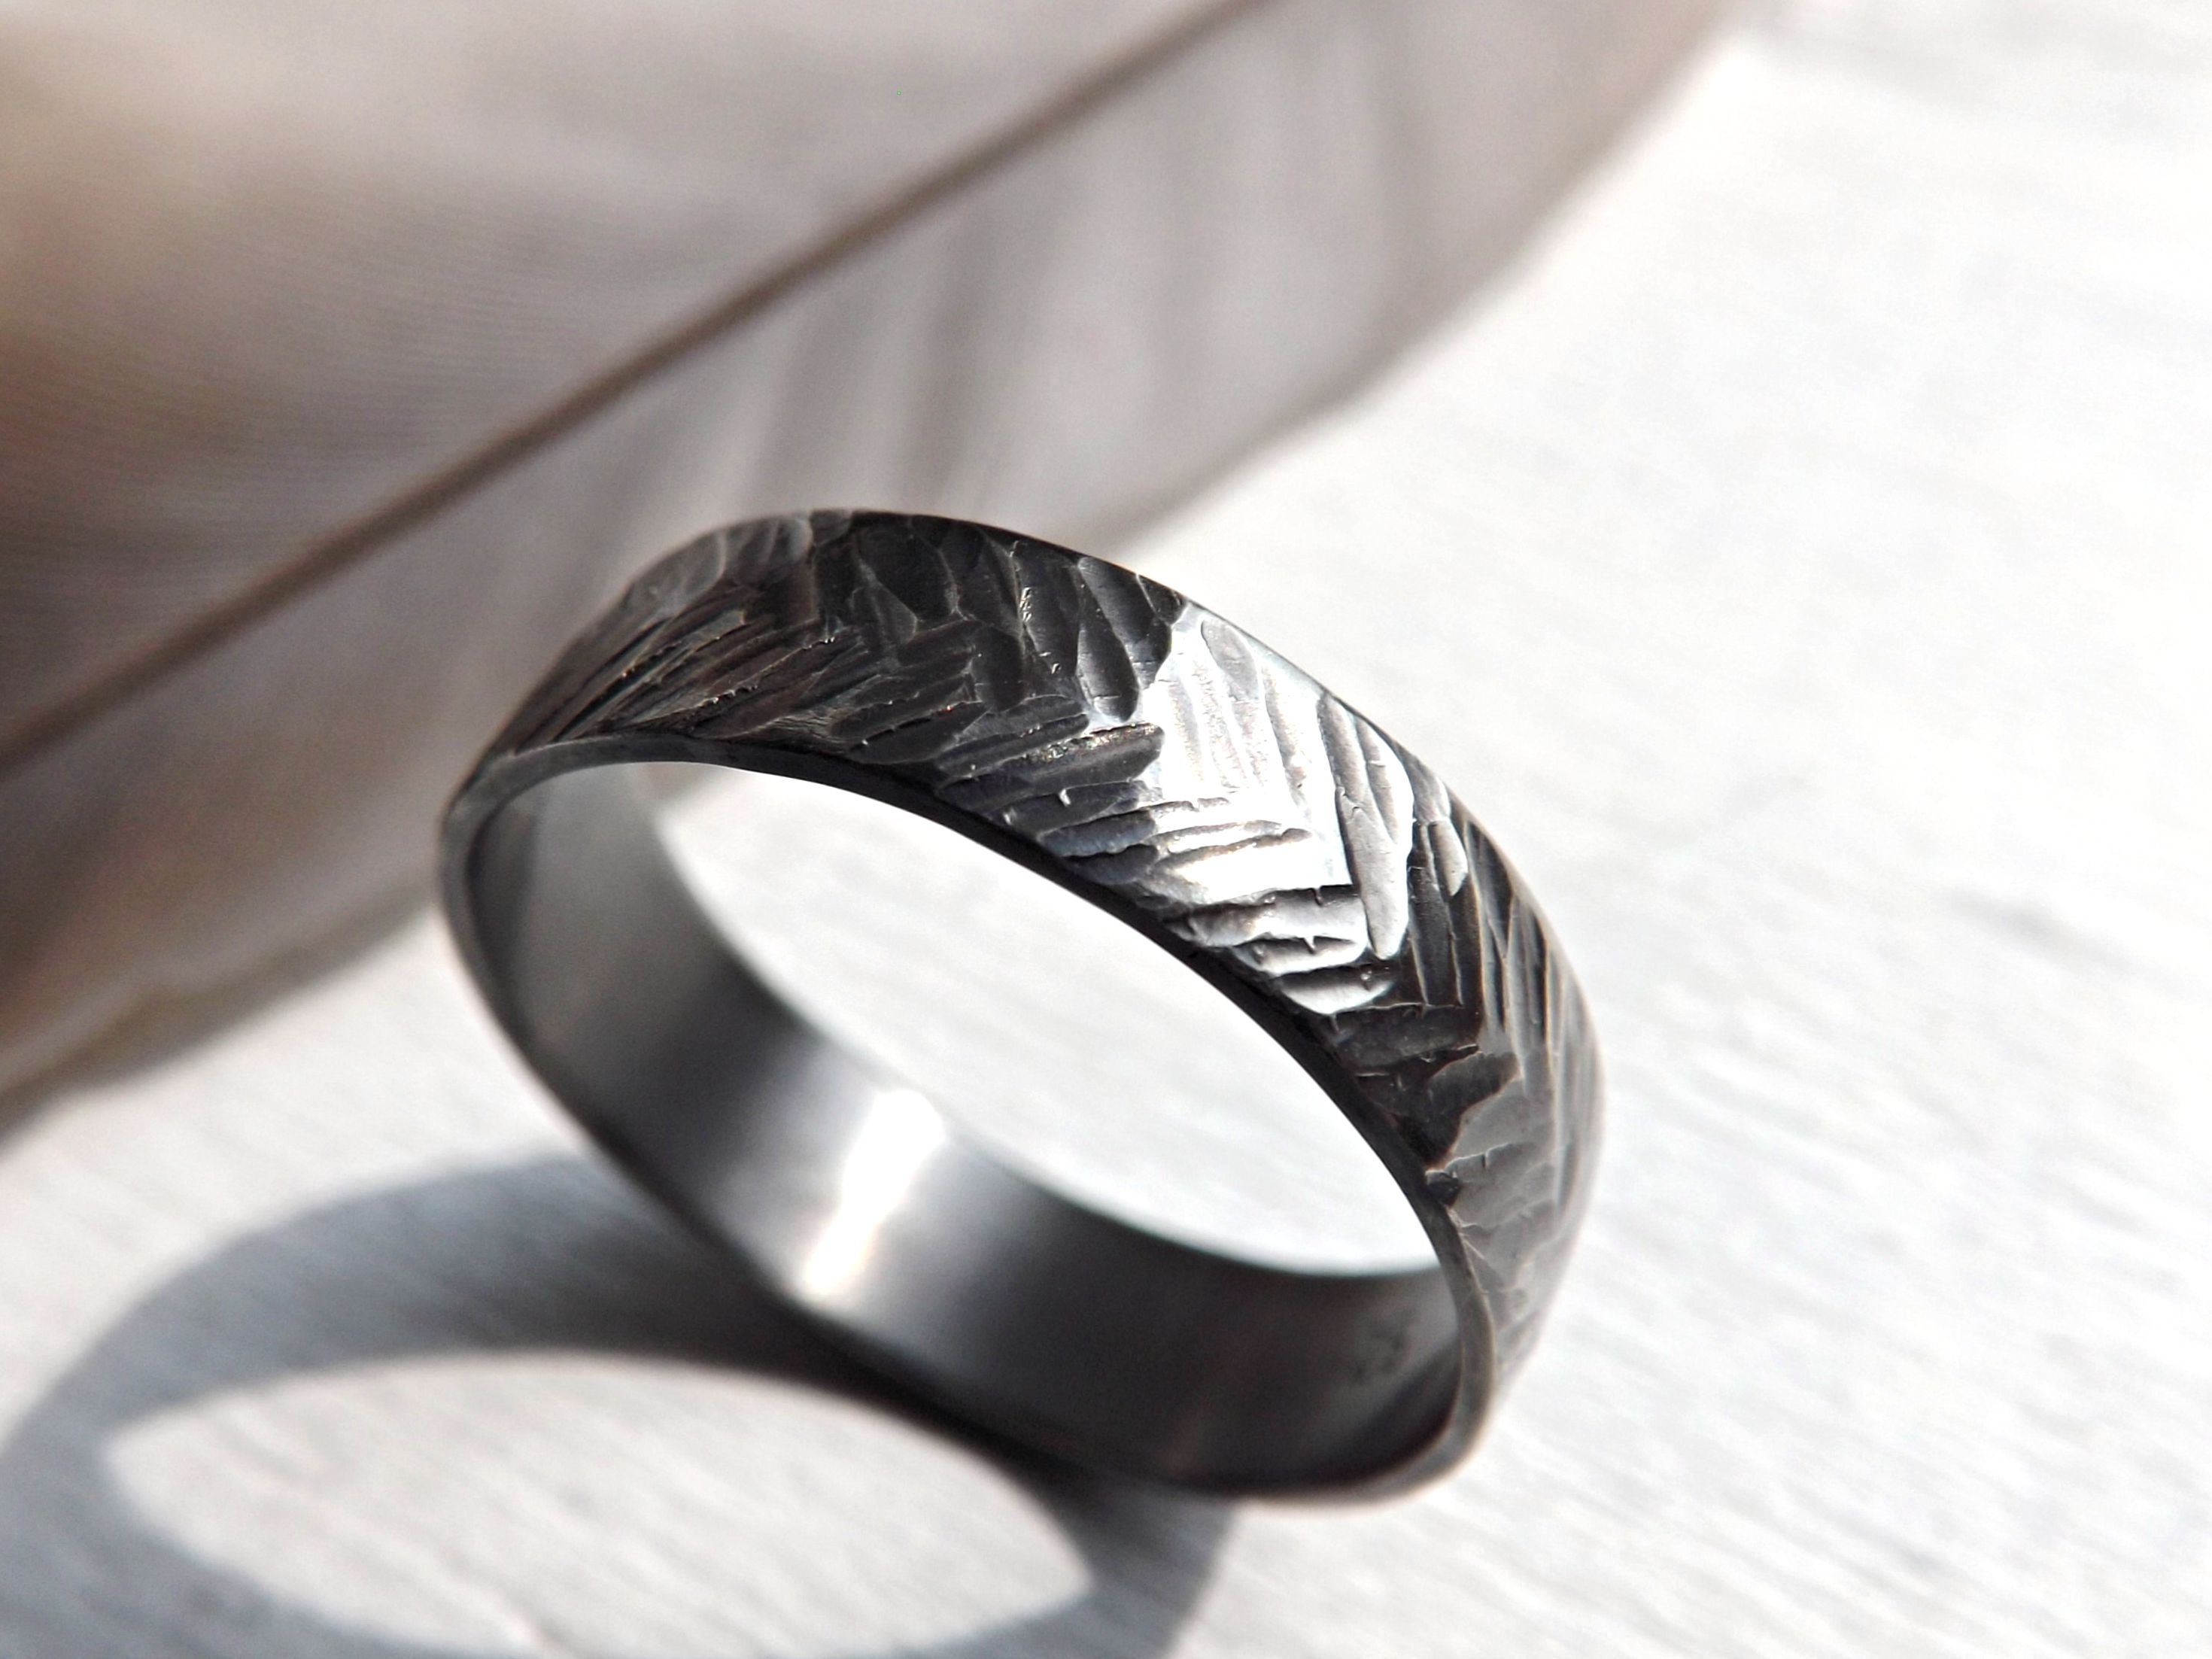 Buy A Handmade Chevron Wedding Ring Silver, Sterling Silver Ring For Most Popular Chevron Wedding Rings (View 6 of 15)